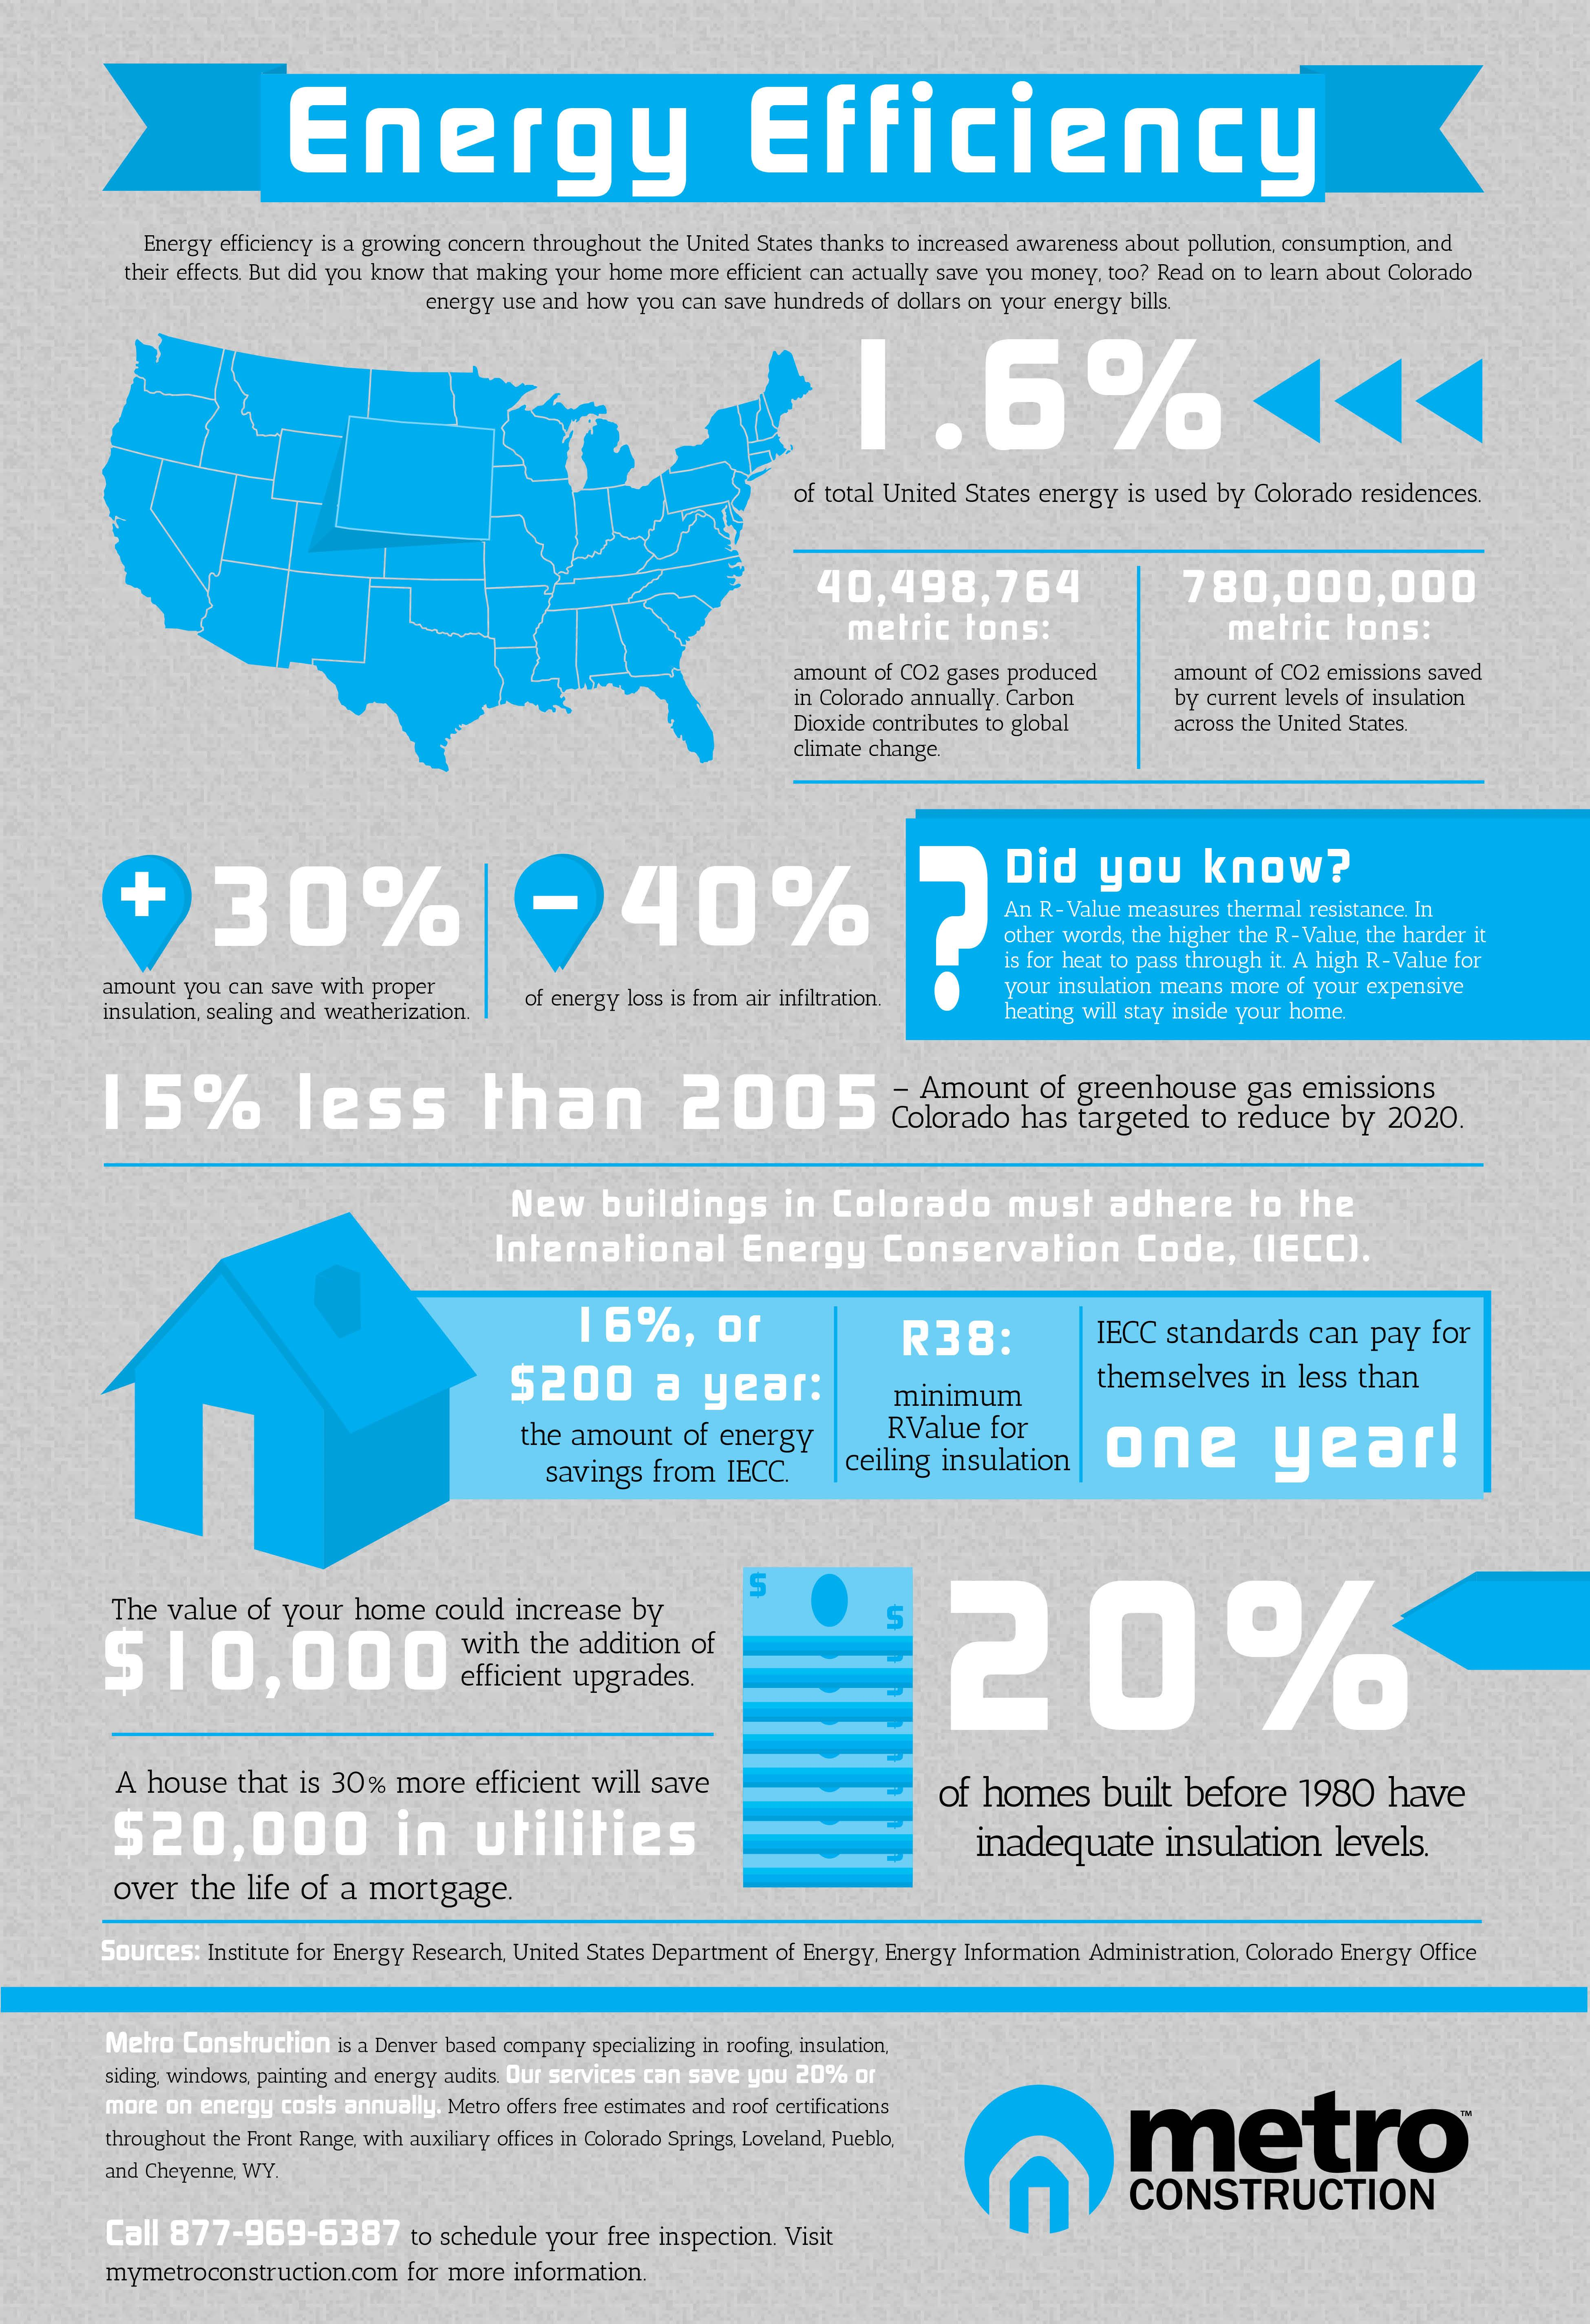 Energy Efficiency in Colorado | Visual.ly